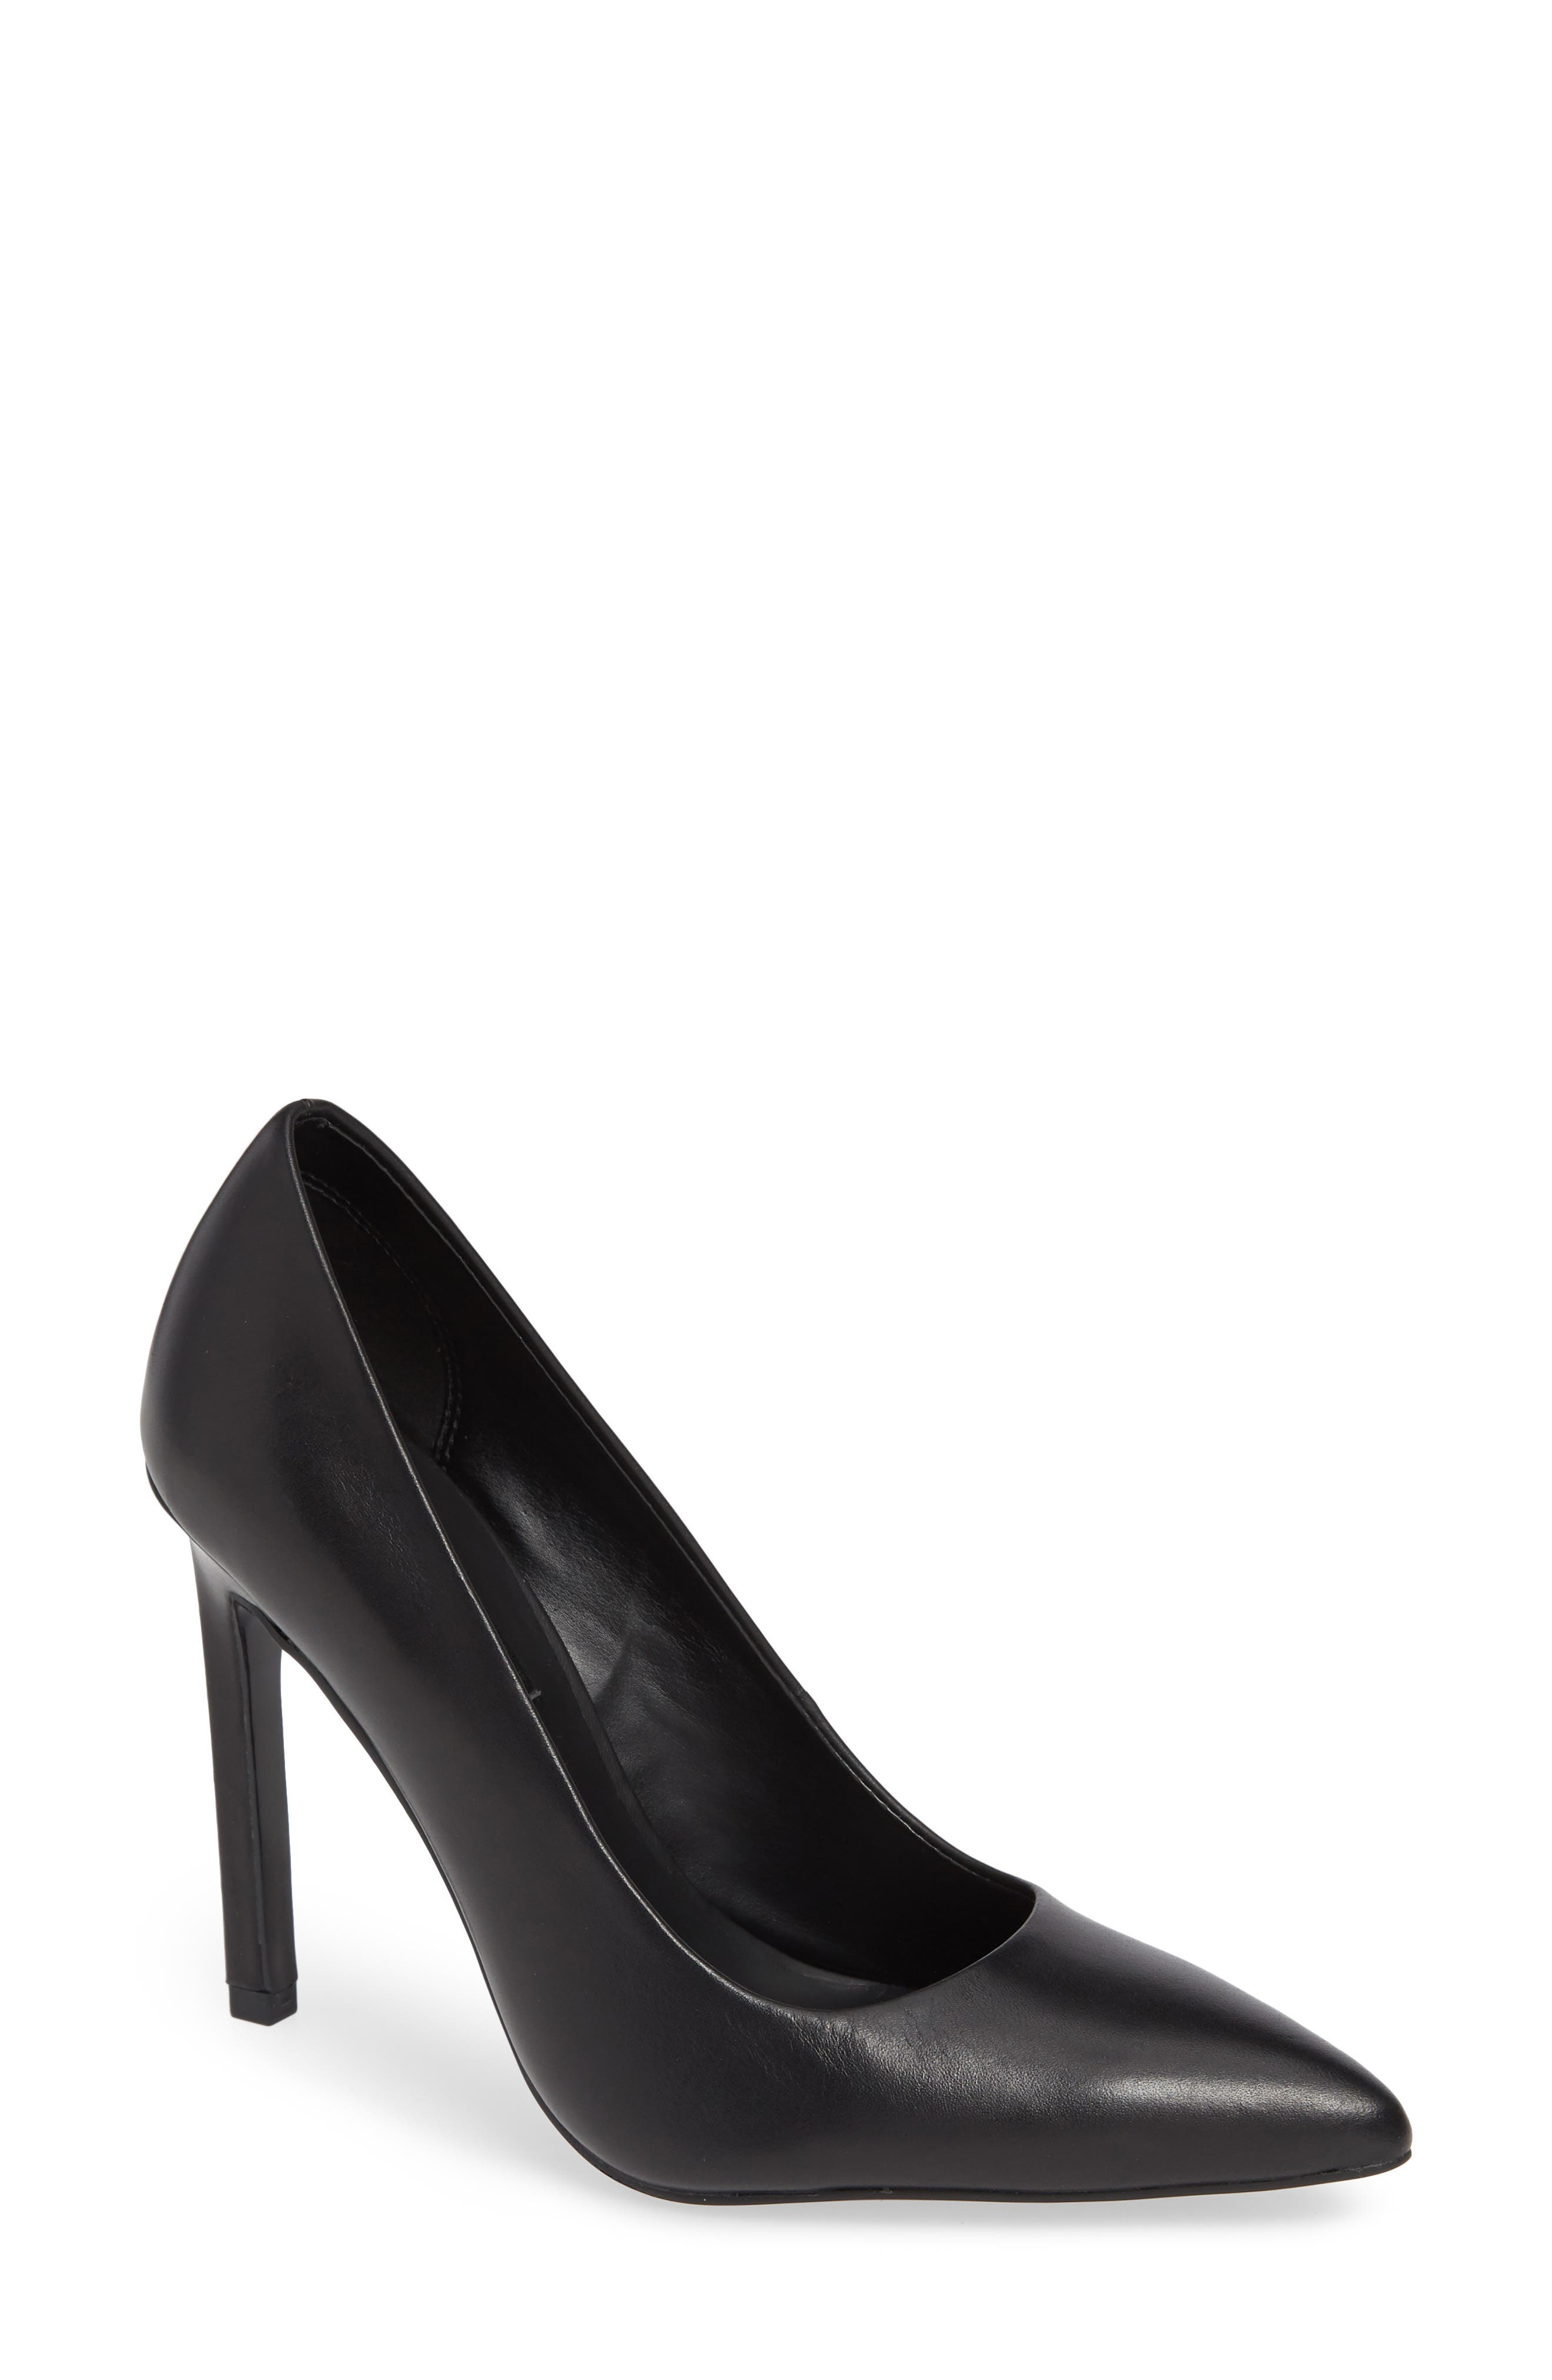 Paige Pointed Toe Pump,                             Main thumbnail 1, color,                             BLACK LEATHER